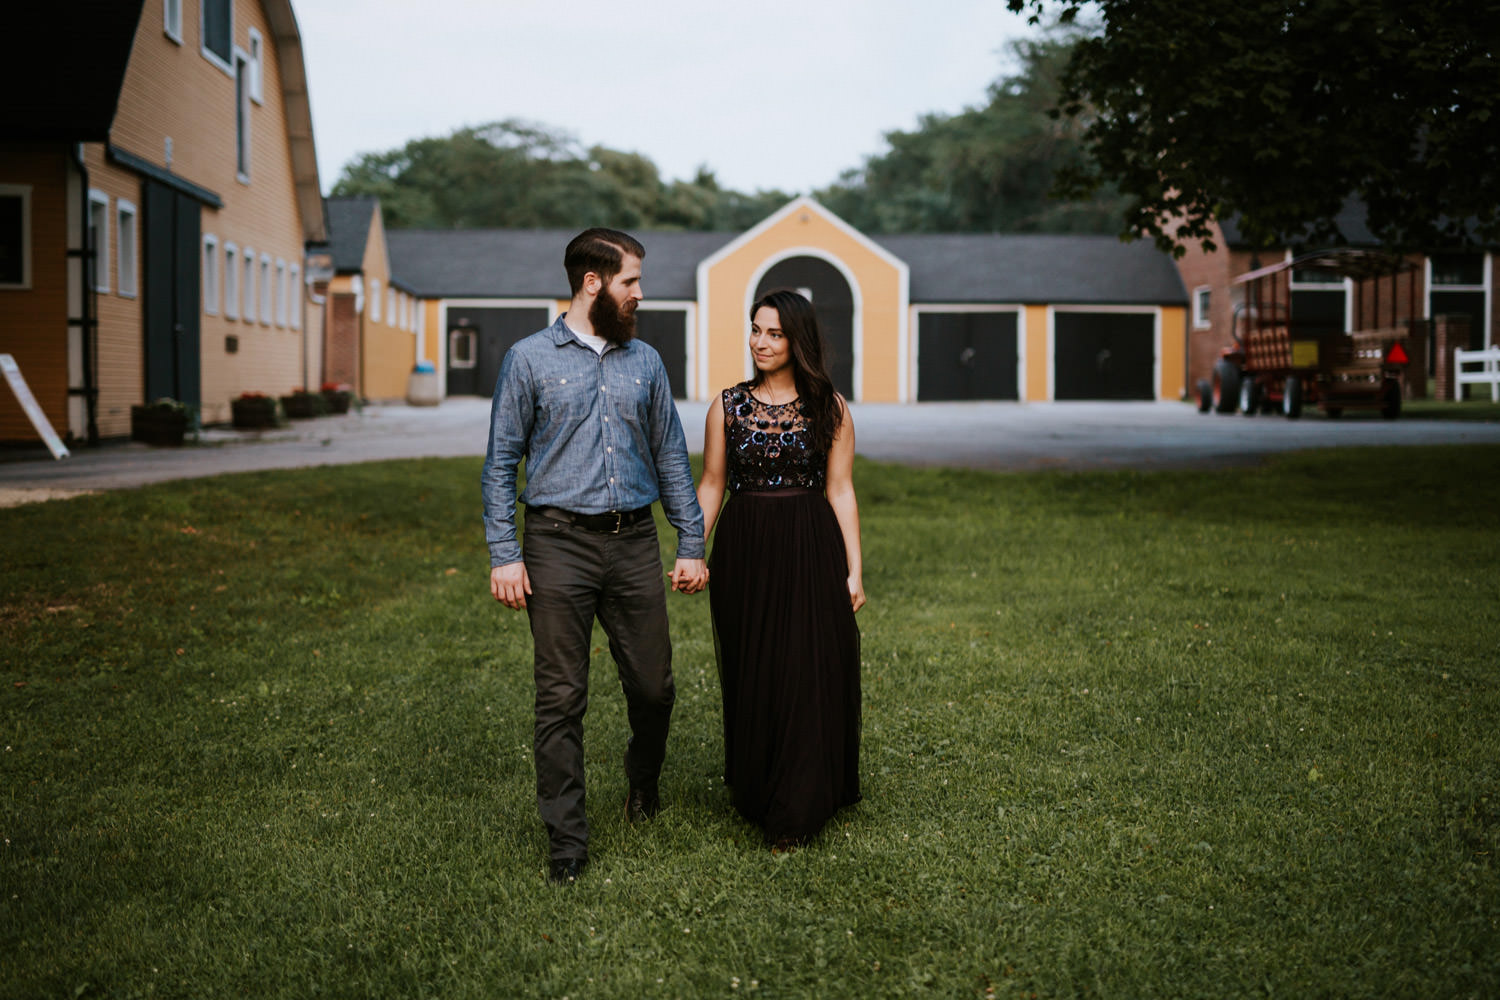 St. James farm wedding photographer